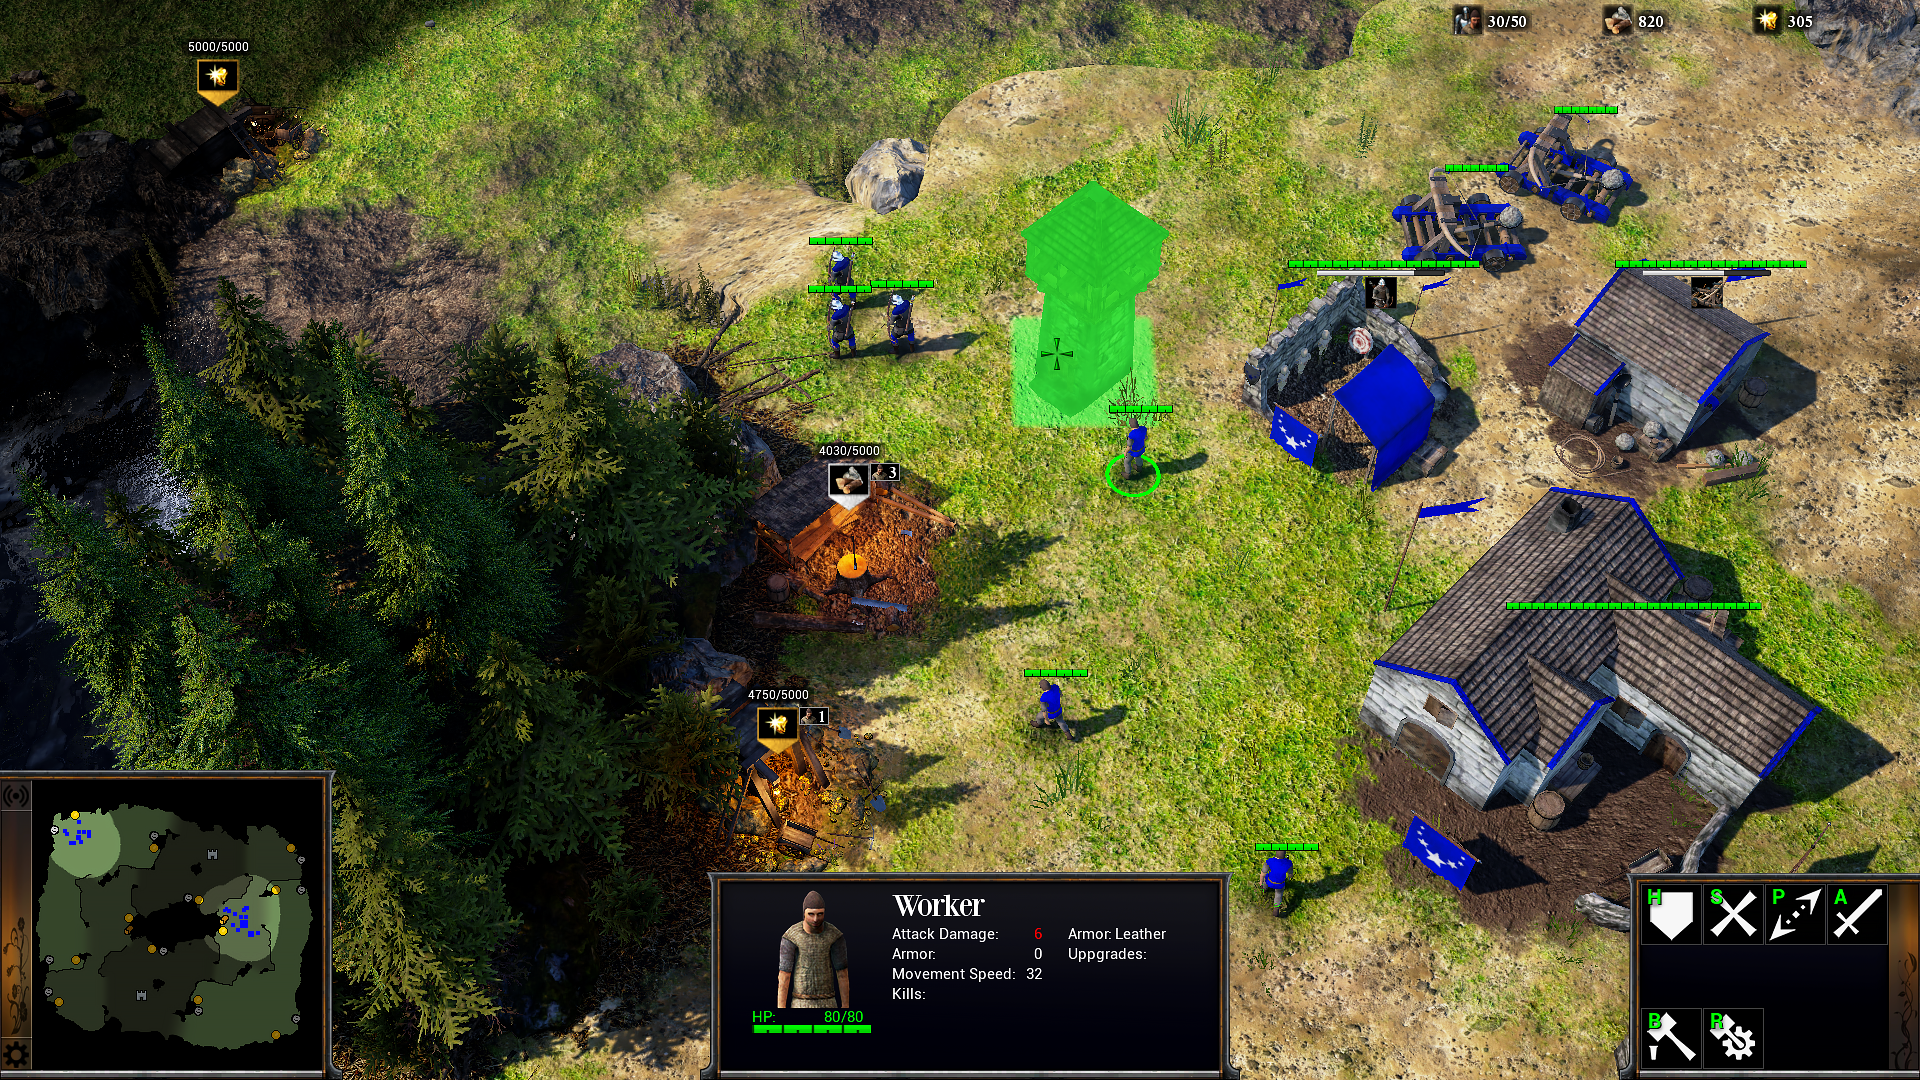 Rts Base Building Games Pc | Games World